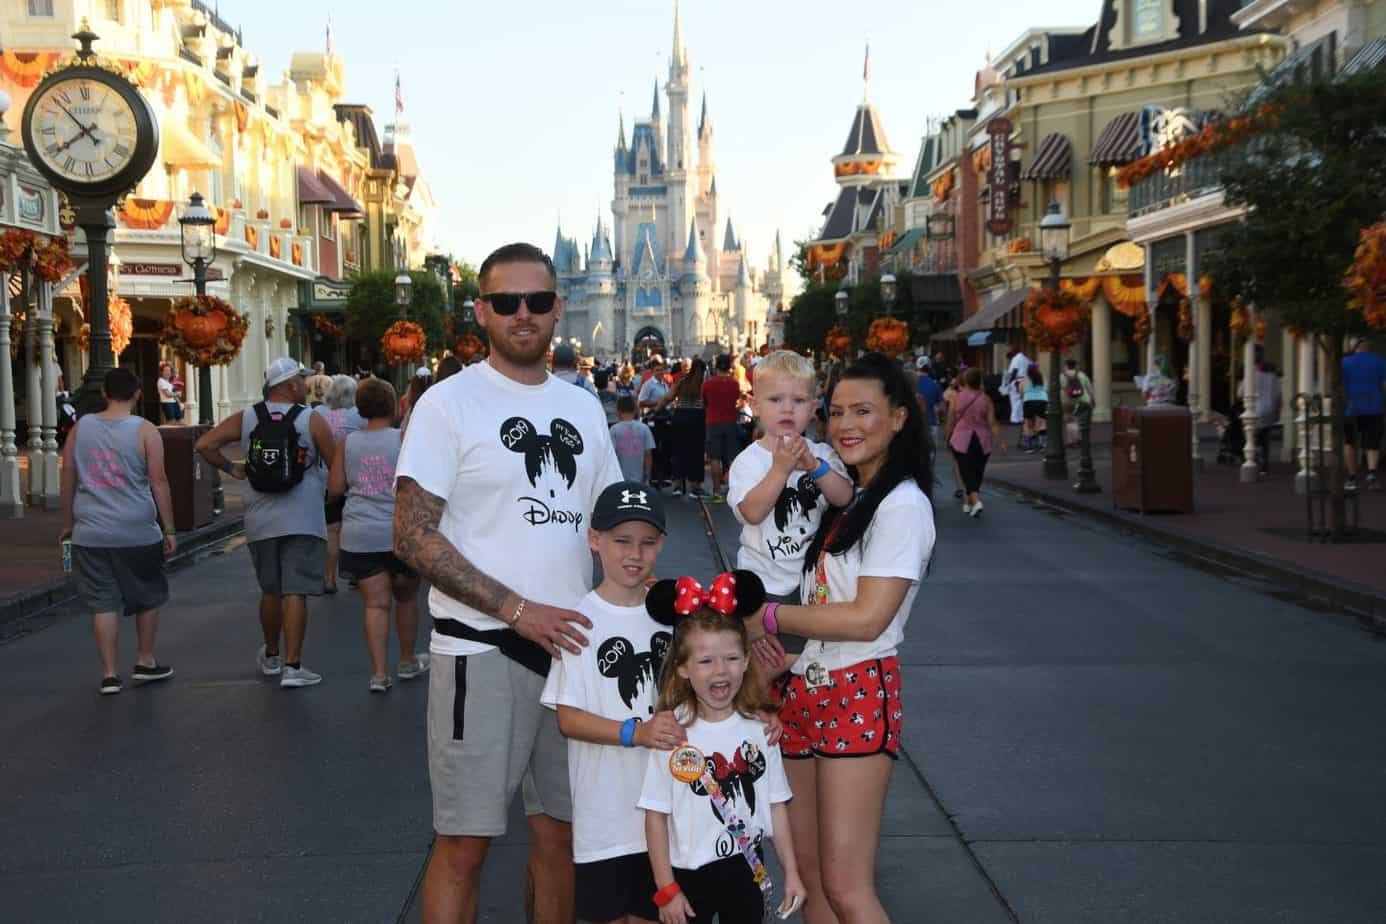 photo pass photo infront of cinderellas castle in magic kingdom Disney world